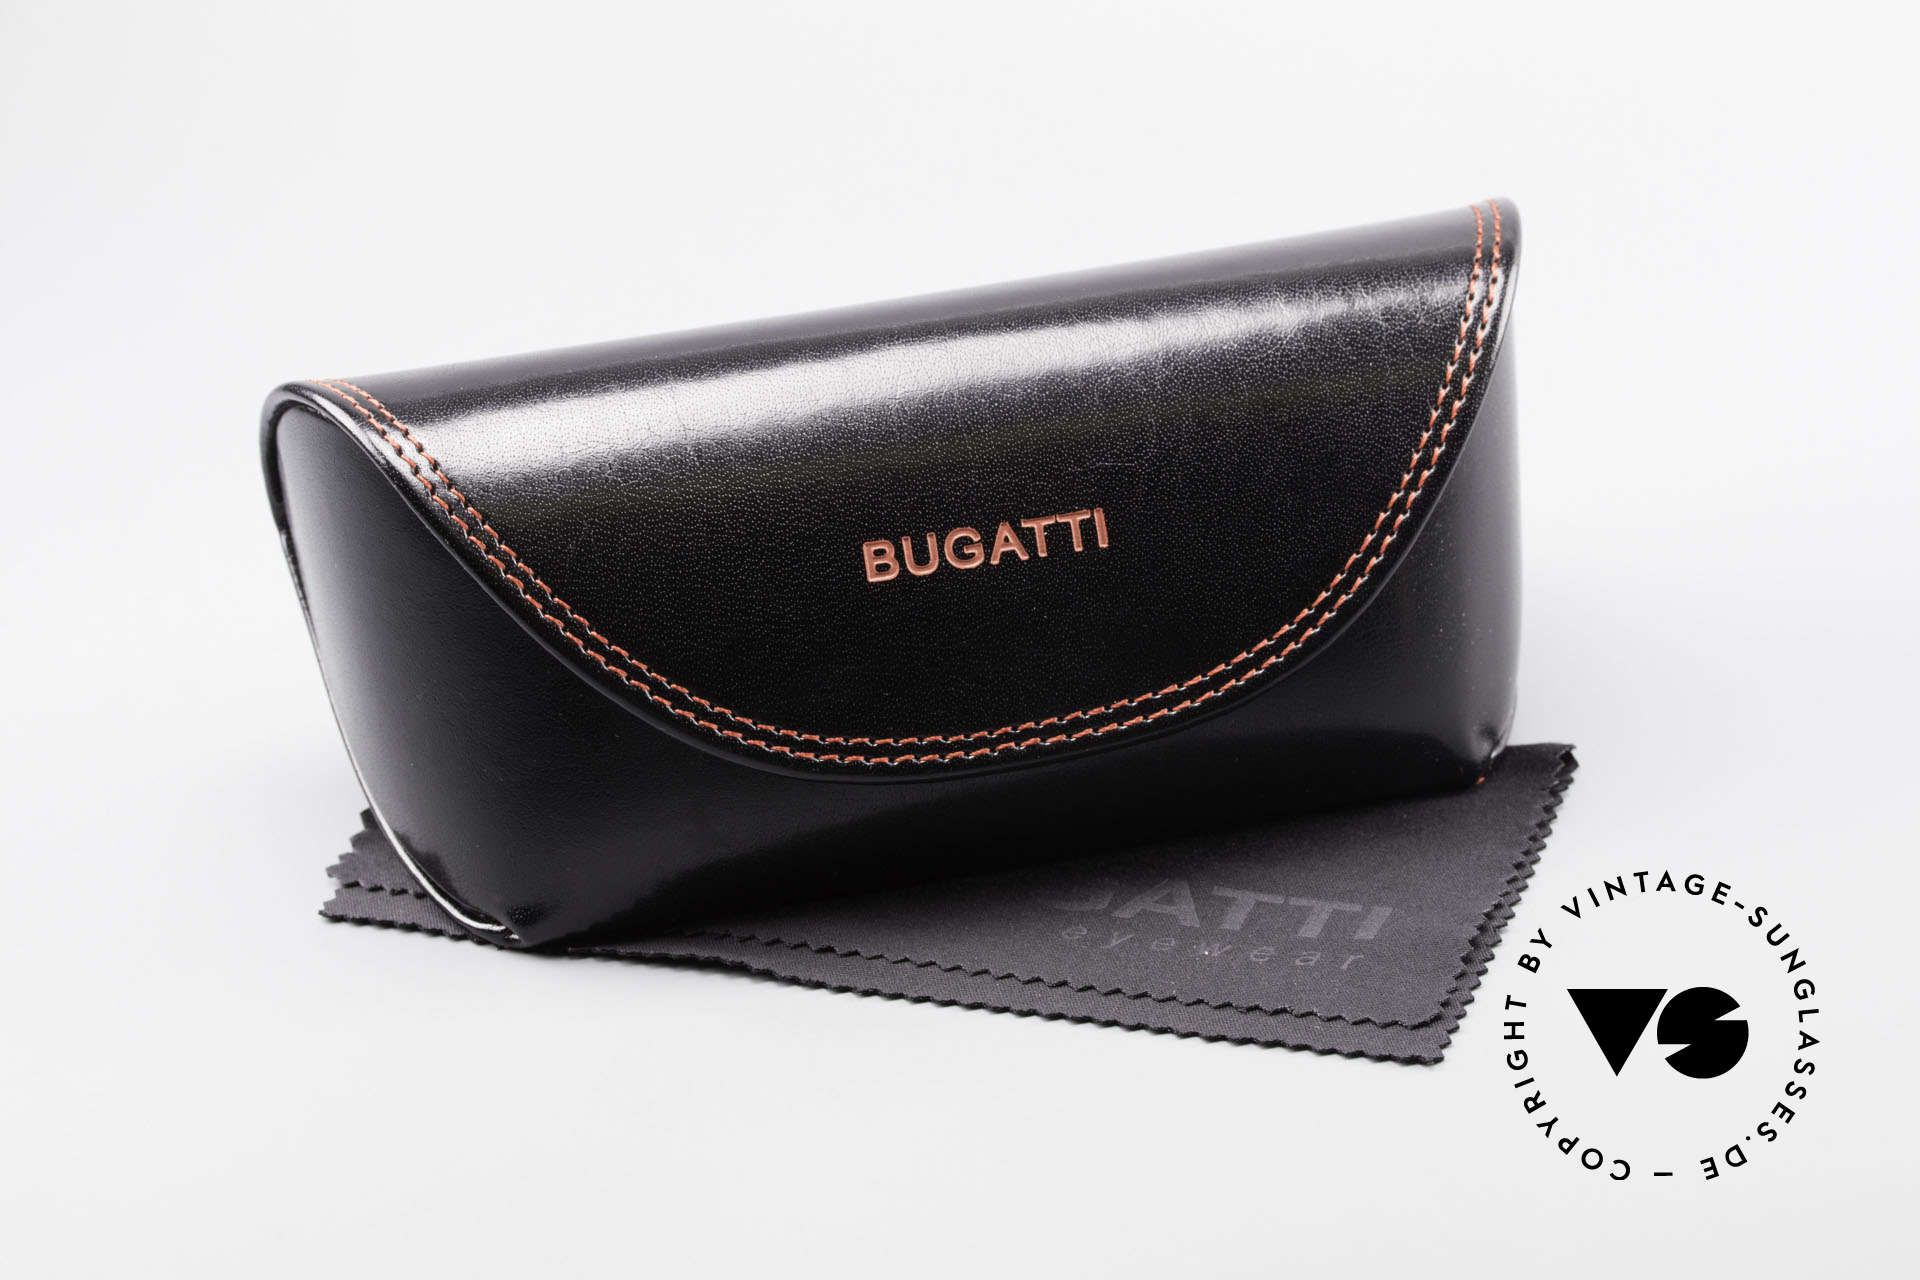 Bugatti 473 Precious Ebony Gray Gold, Size: large, Made for Men